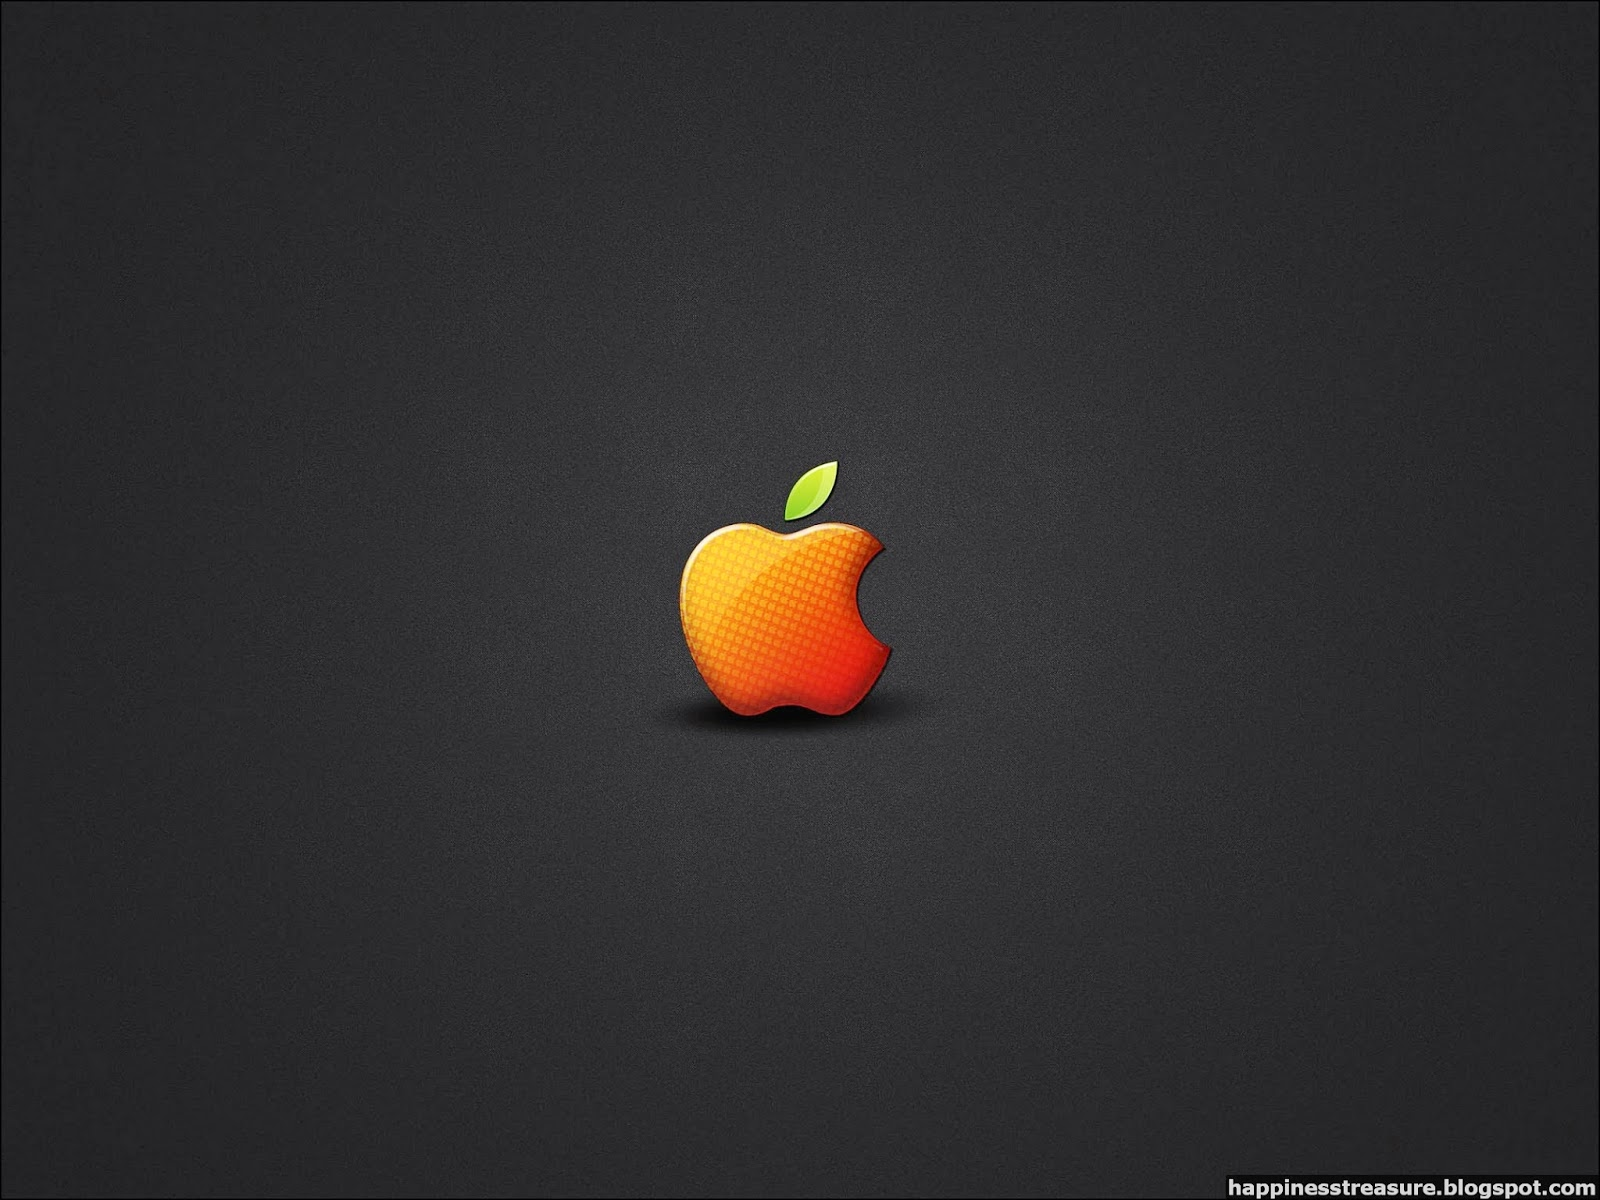 apple desktop wallpaper windows 7 - photo #23